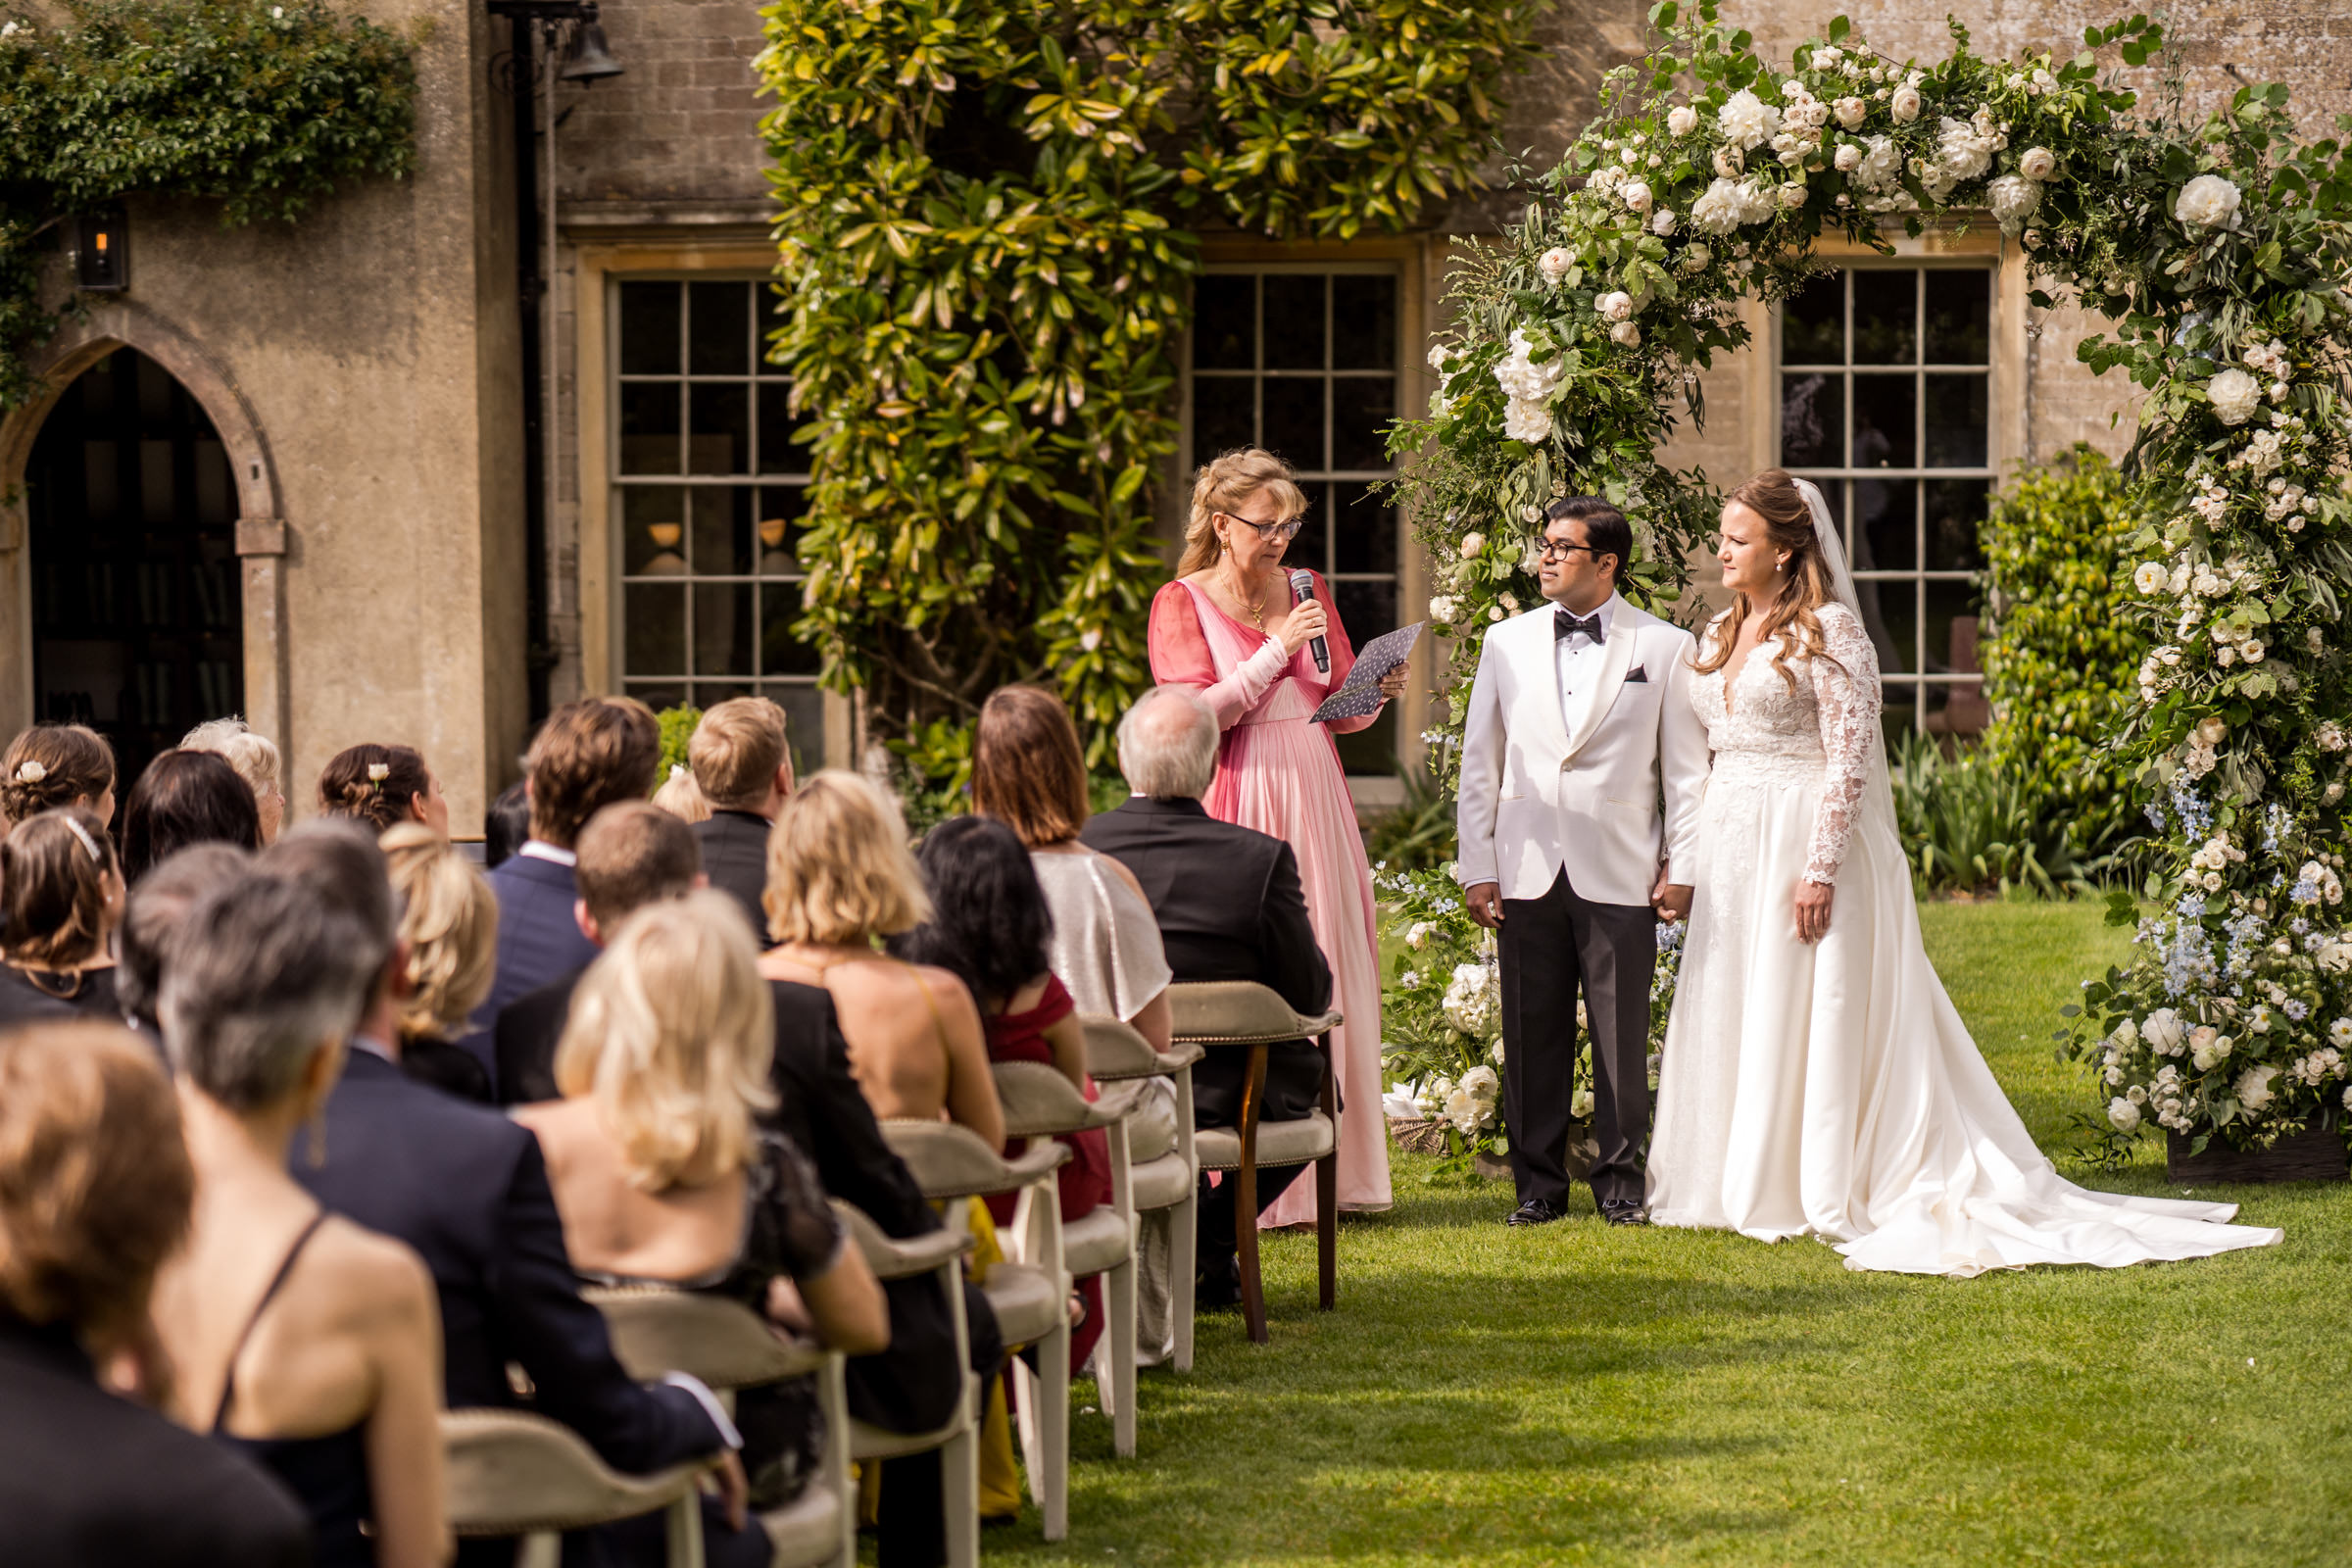 Babington House Outdoor Civil Ceremony and Wedding Day 019.jpg